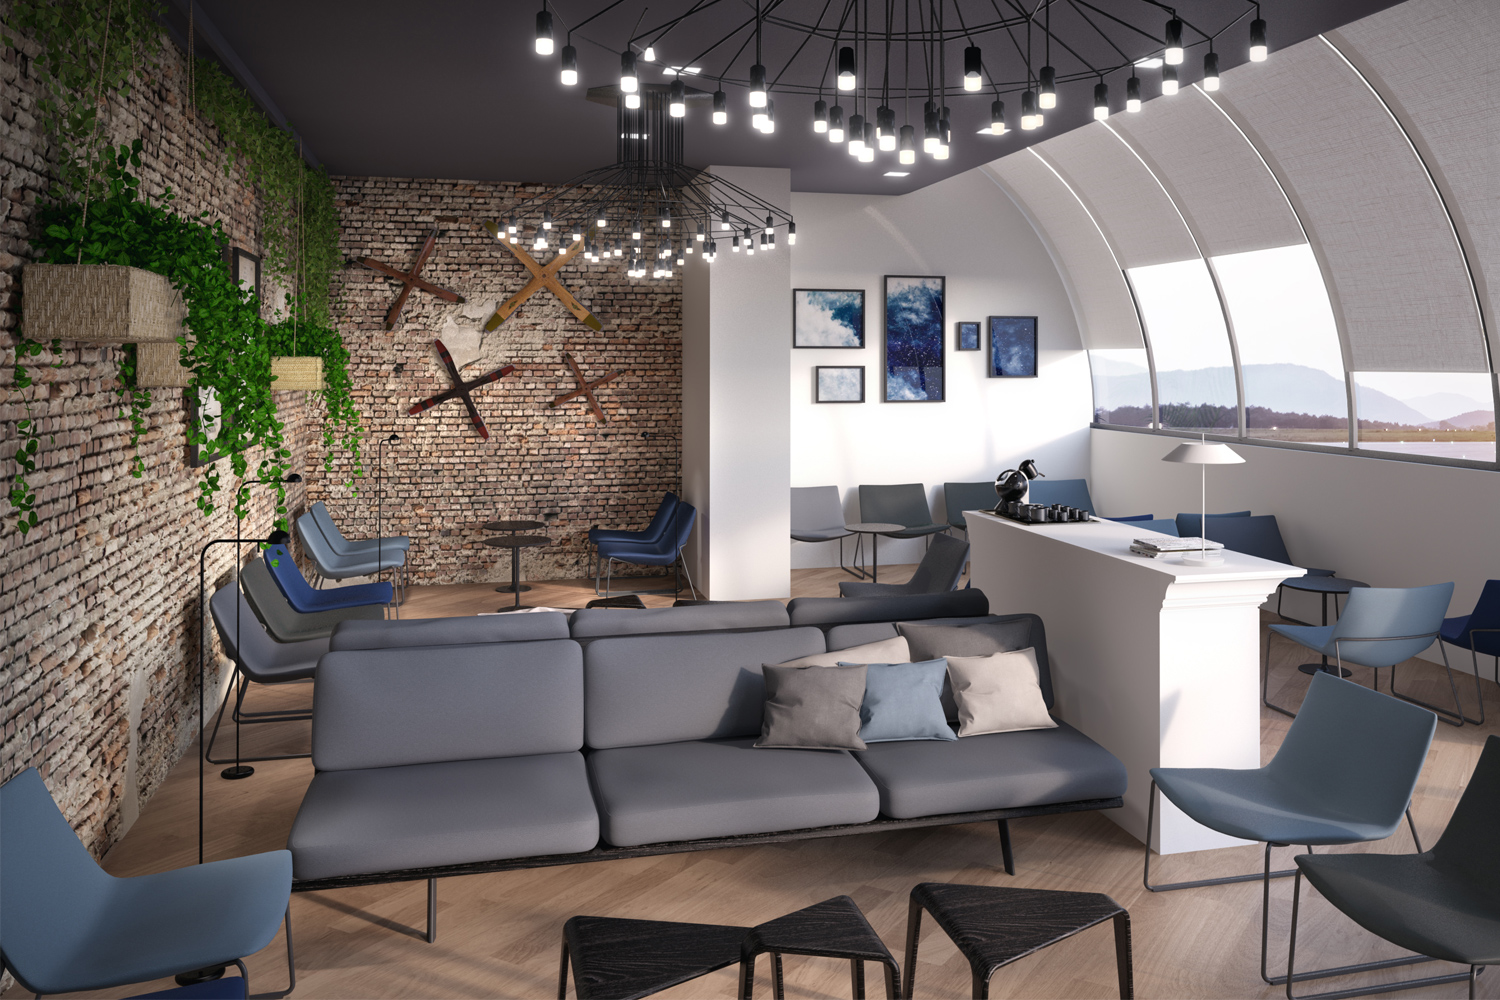 4-AP-PASSENGER-LOUNGE-AVIA-FCO-AIRPORT-UP-TO-YOU-STUDIO